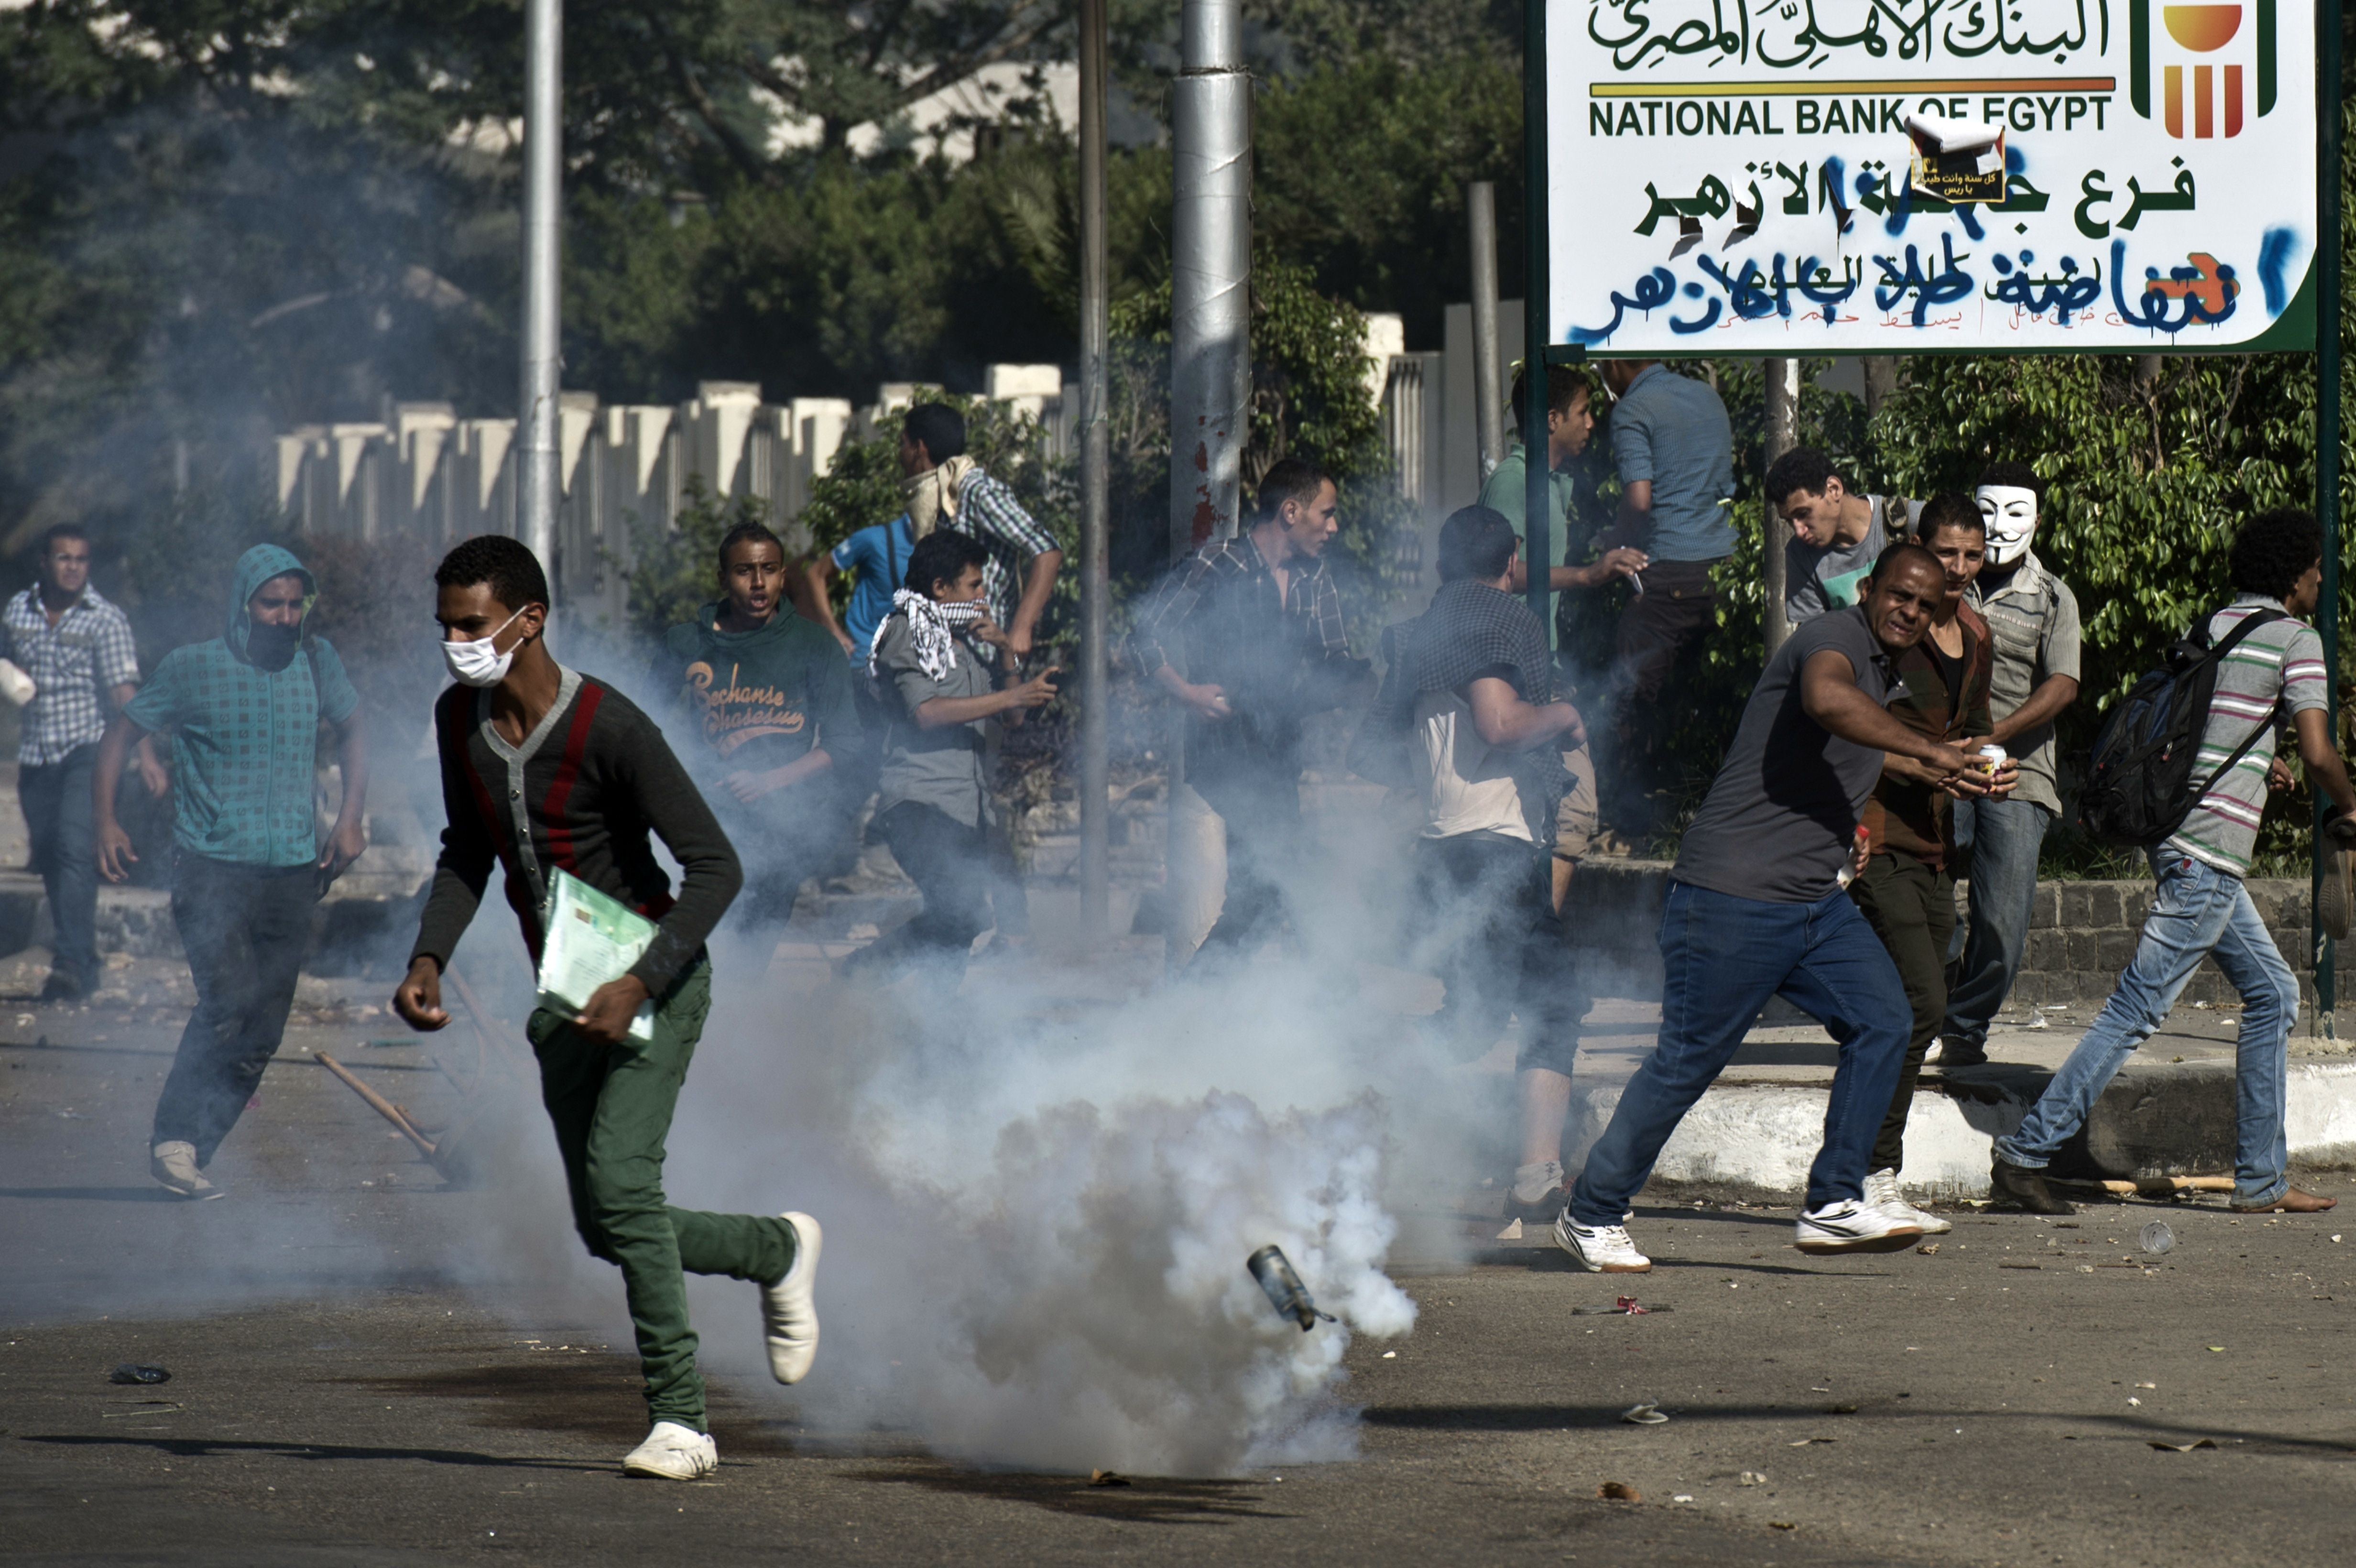 Egyptian students of al-Azhar university run for cover from a tear gas canister fired by riot police during clashes  outside their university campus in Cairo on October 20, 2013 following an anti-army protest. (AFP PHOTO / KHALED DESOUKI)